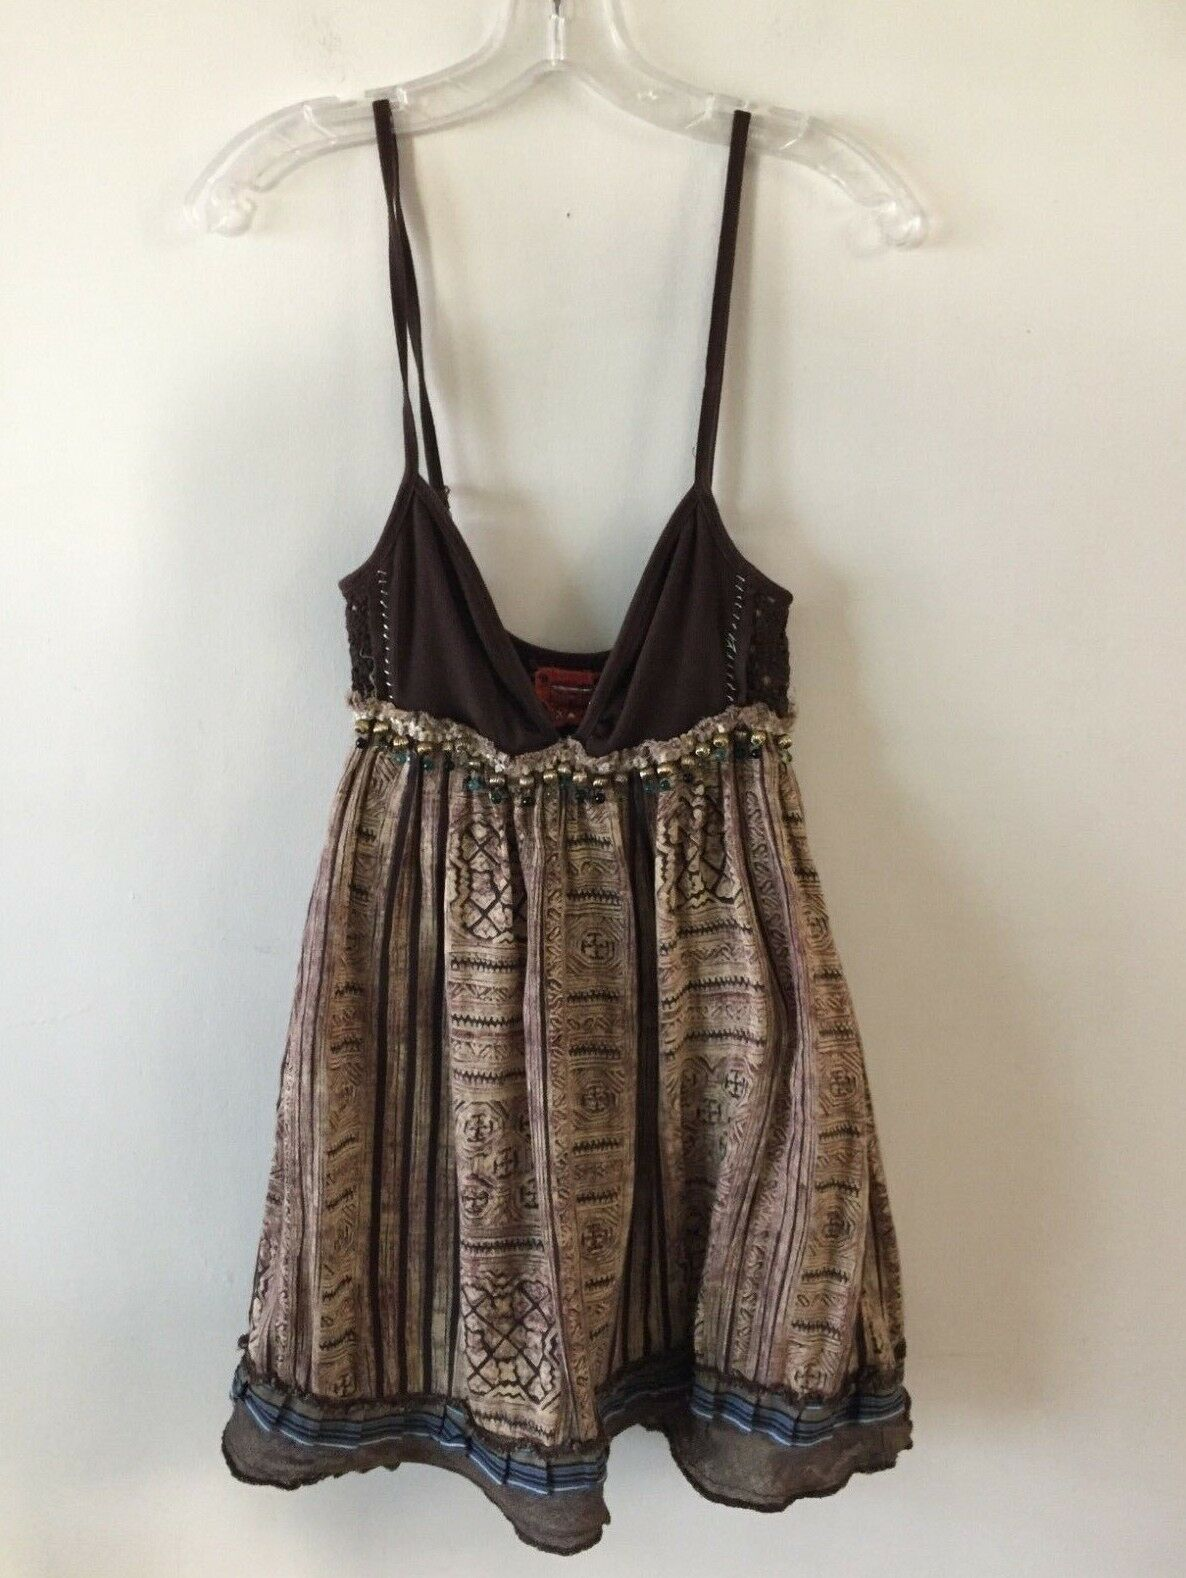 Free People Fit & Flare Tunic Top Mini Dress Burlap Beads Lined Women's Size 4